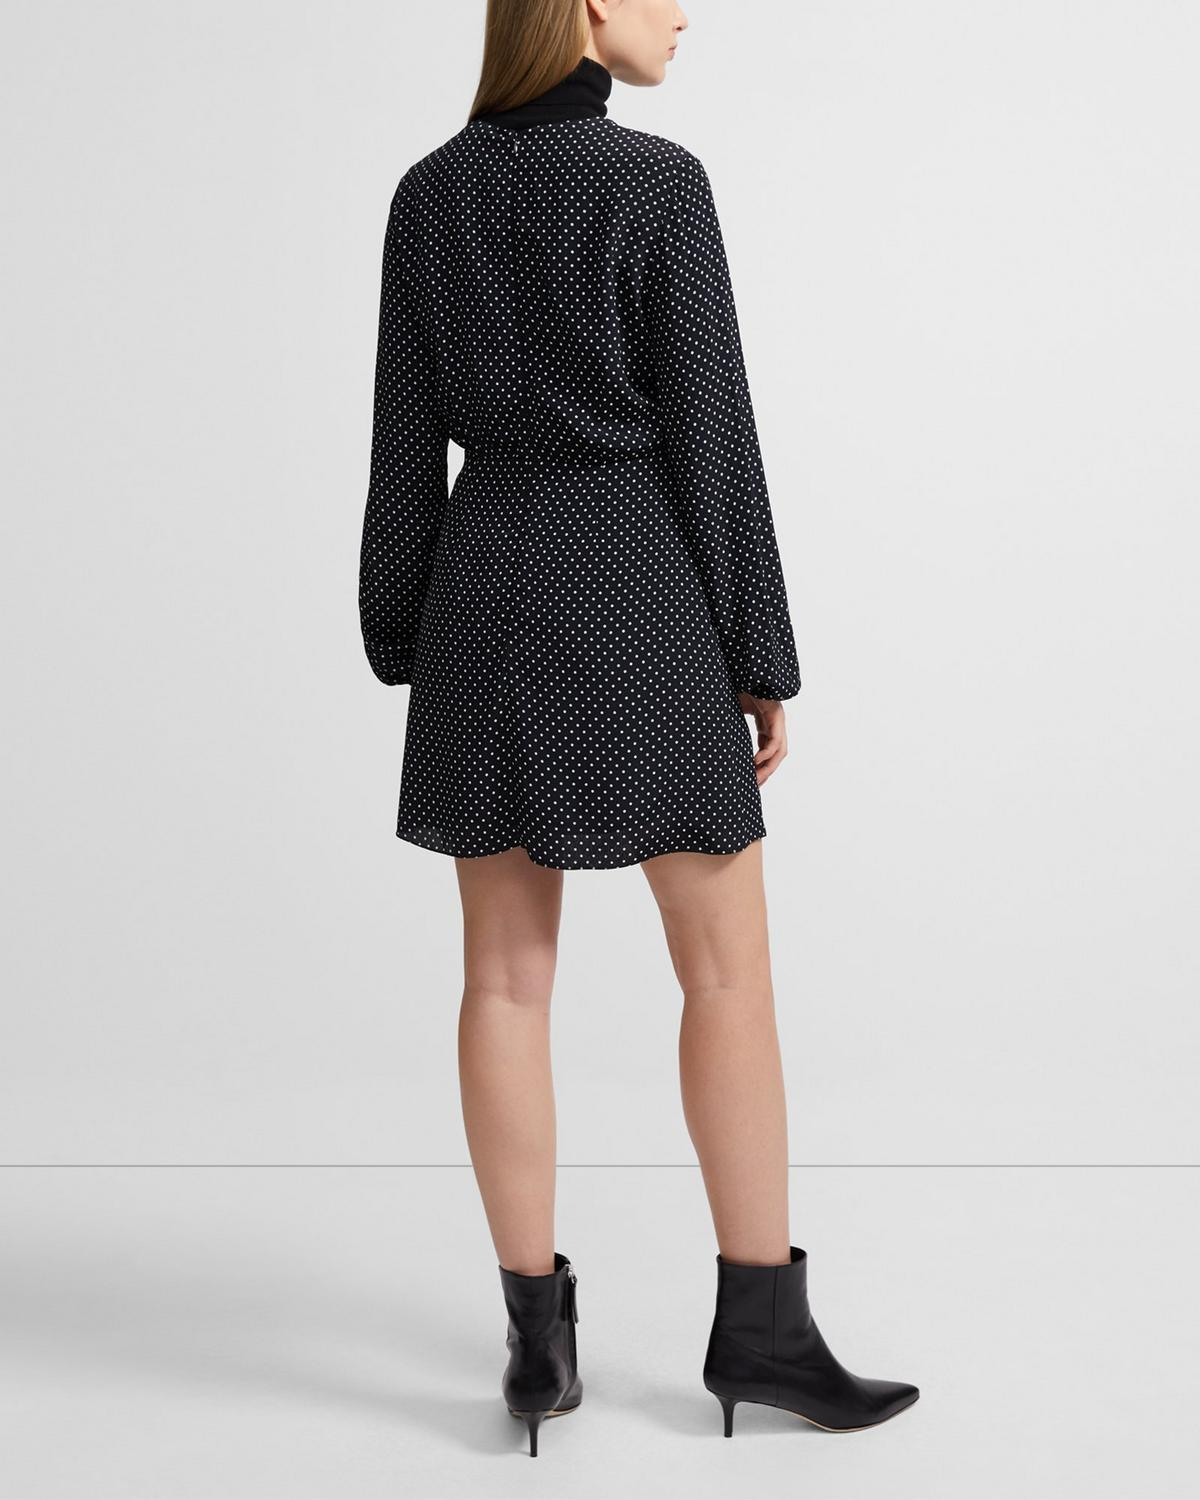 Crewneck Dress in Polka Dot Crepe